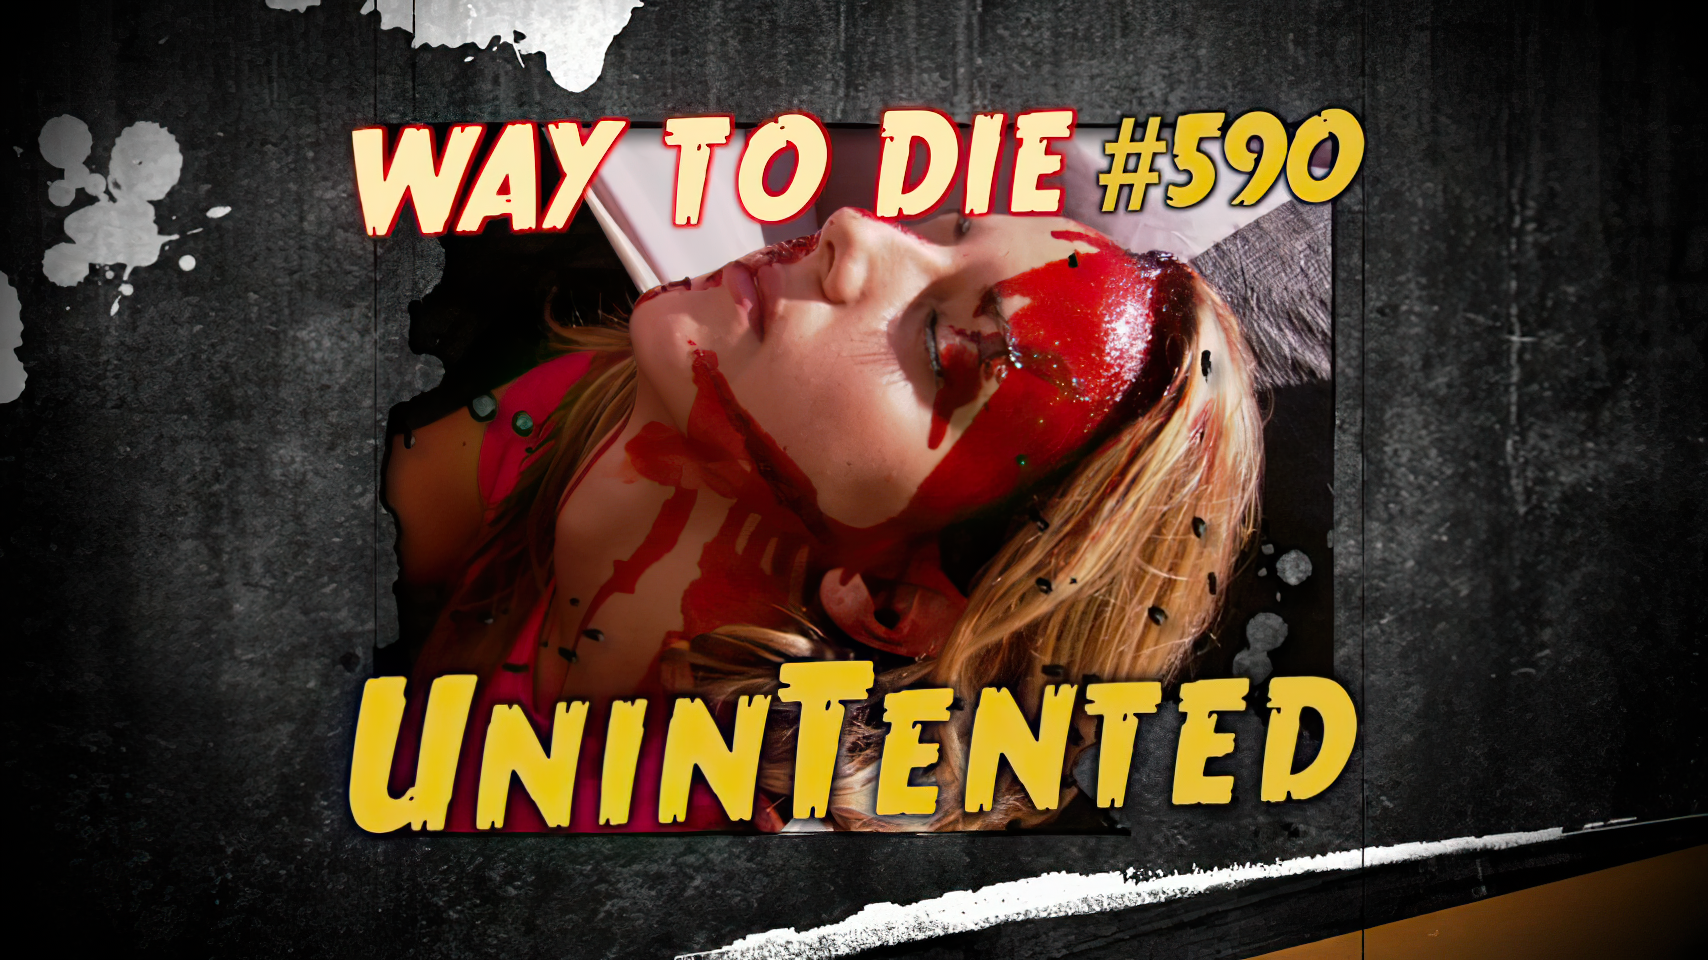 1000 ways to die sexually